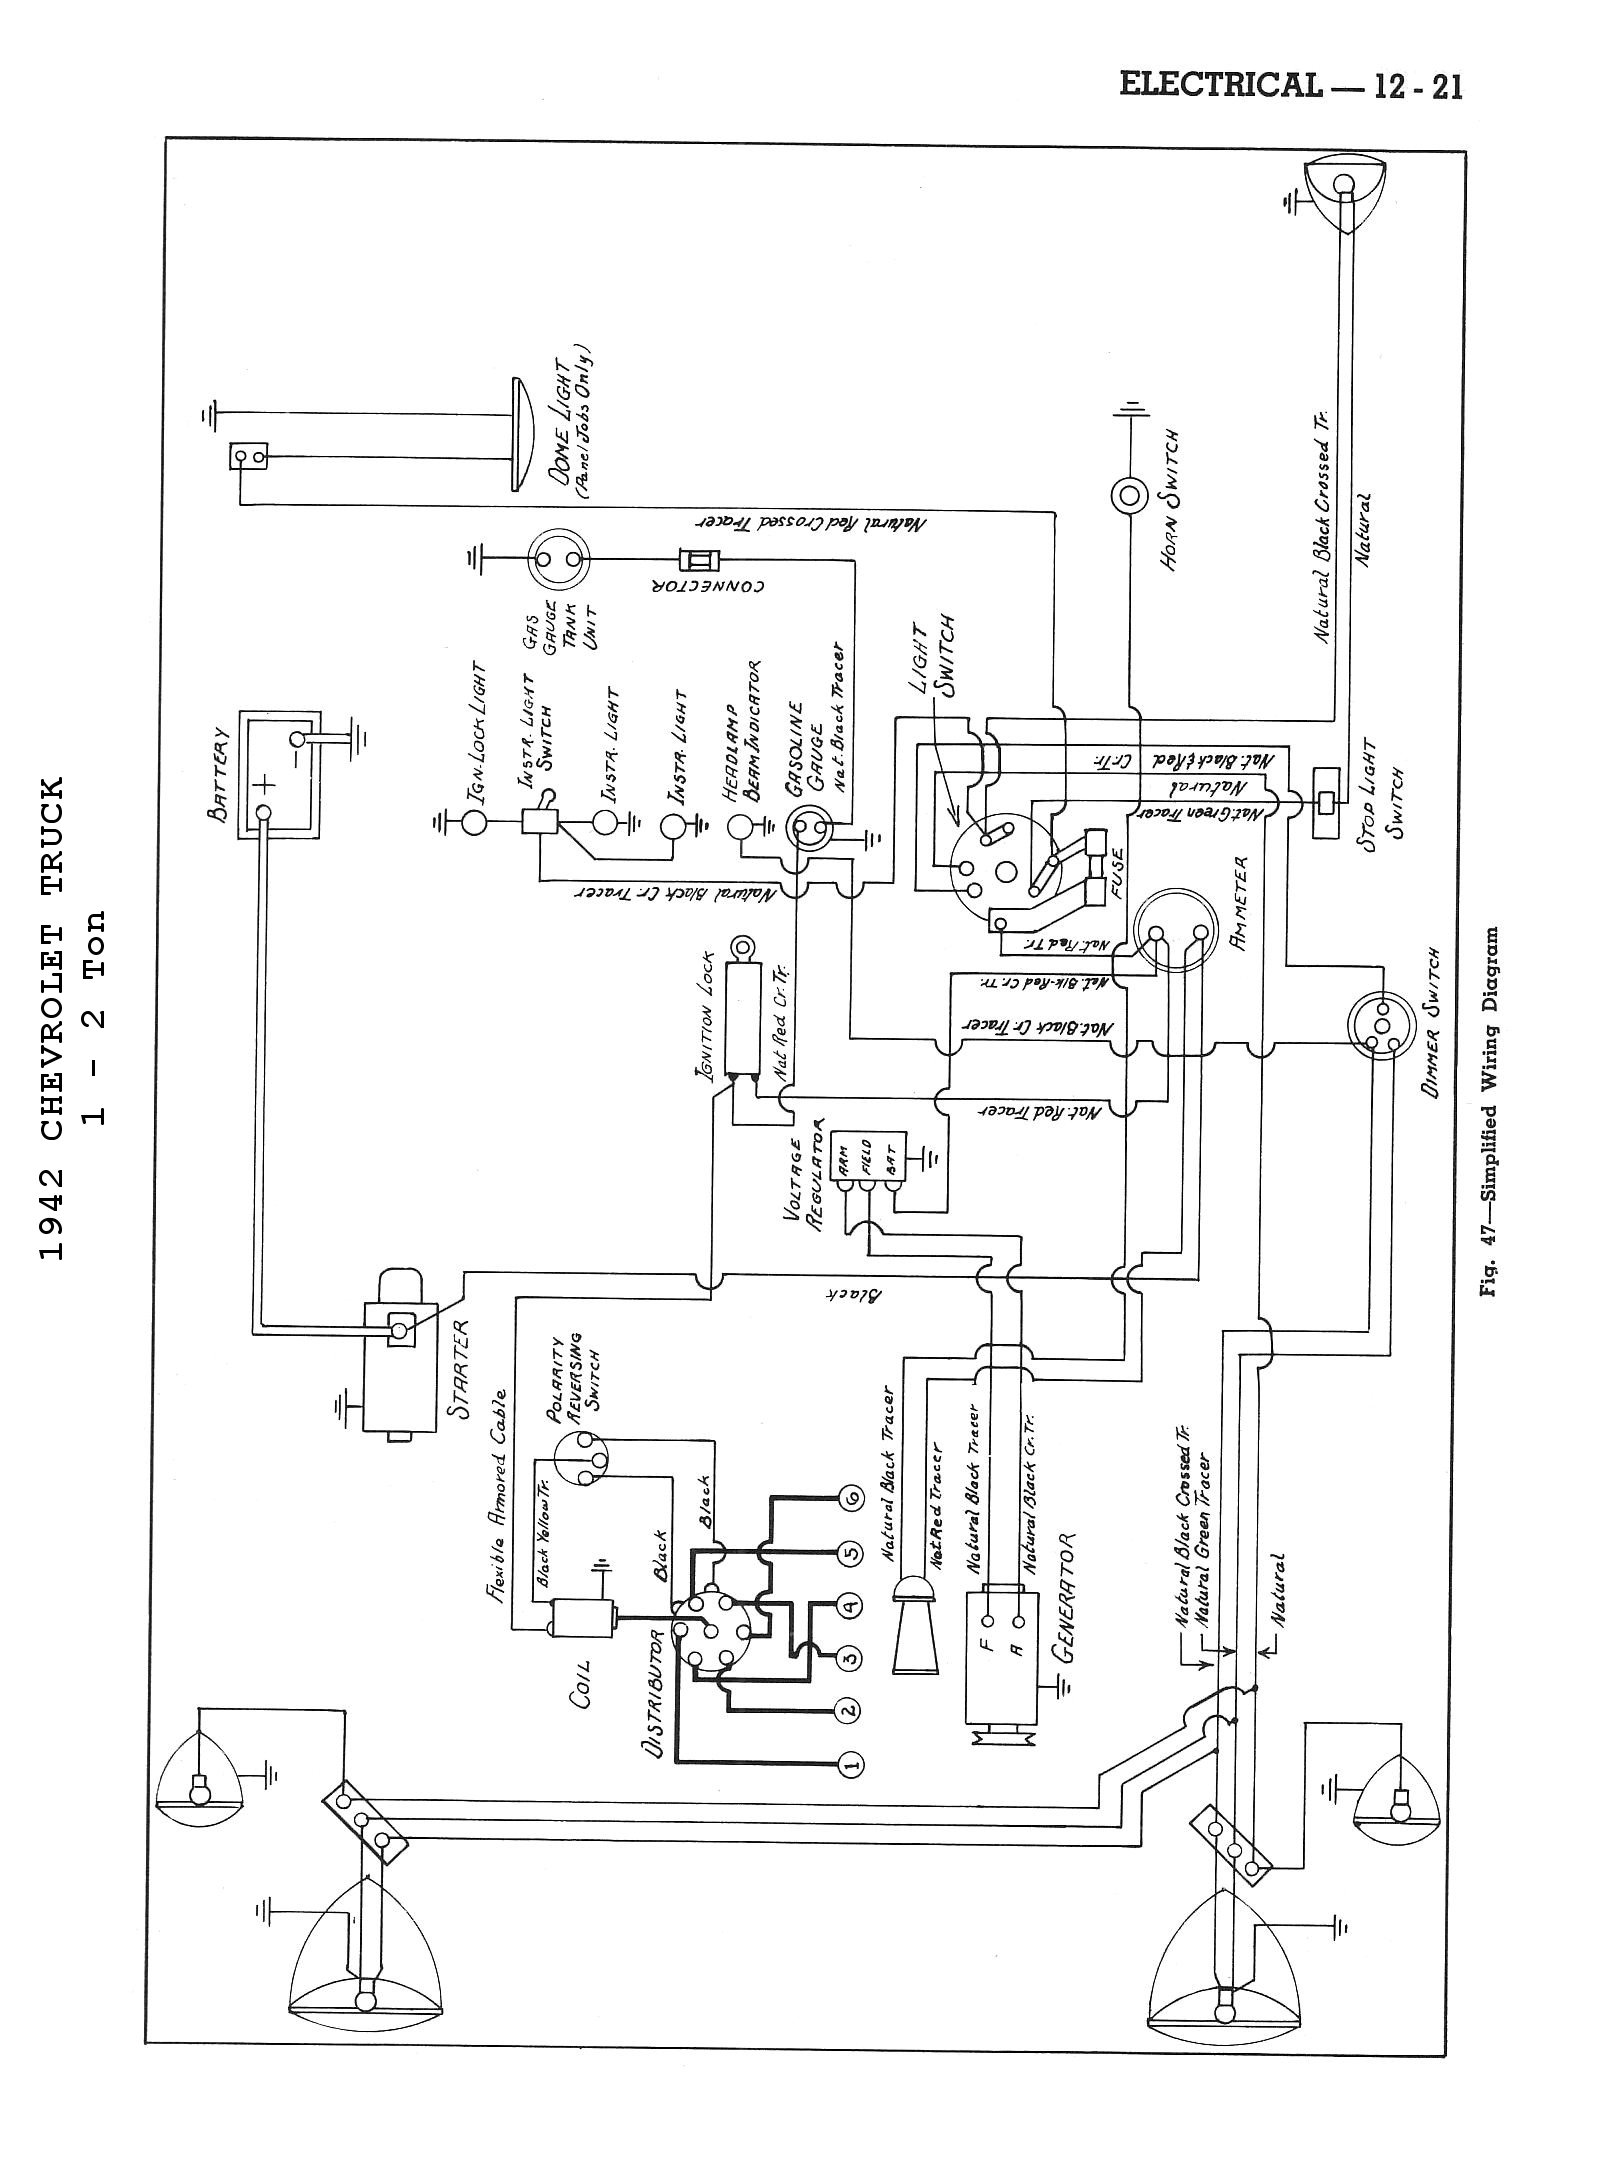 thermostat wiring diagram of a gas with Wiring on Schematic For Amana Gas Furnace Wiring Diagram together with Carrier Hvac System Schematic besides Wiring Diagram Kenmore Dryer additionally Suburban Model Sw6de Parts Breakdown together with Air Conditioning Pid Control System With Adjustable Reset To Offset Thermal Loads Upsets.